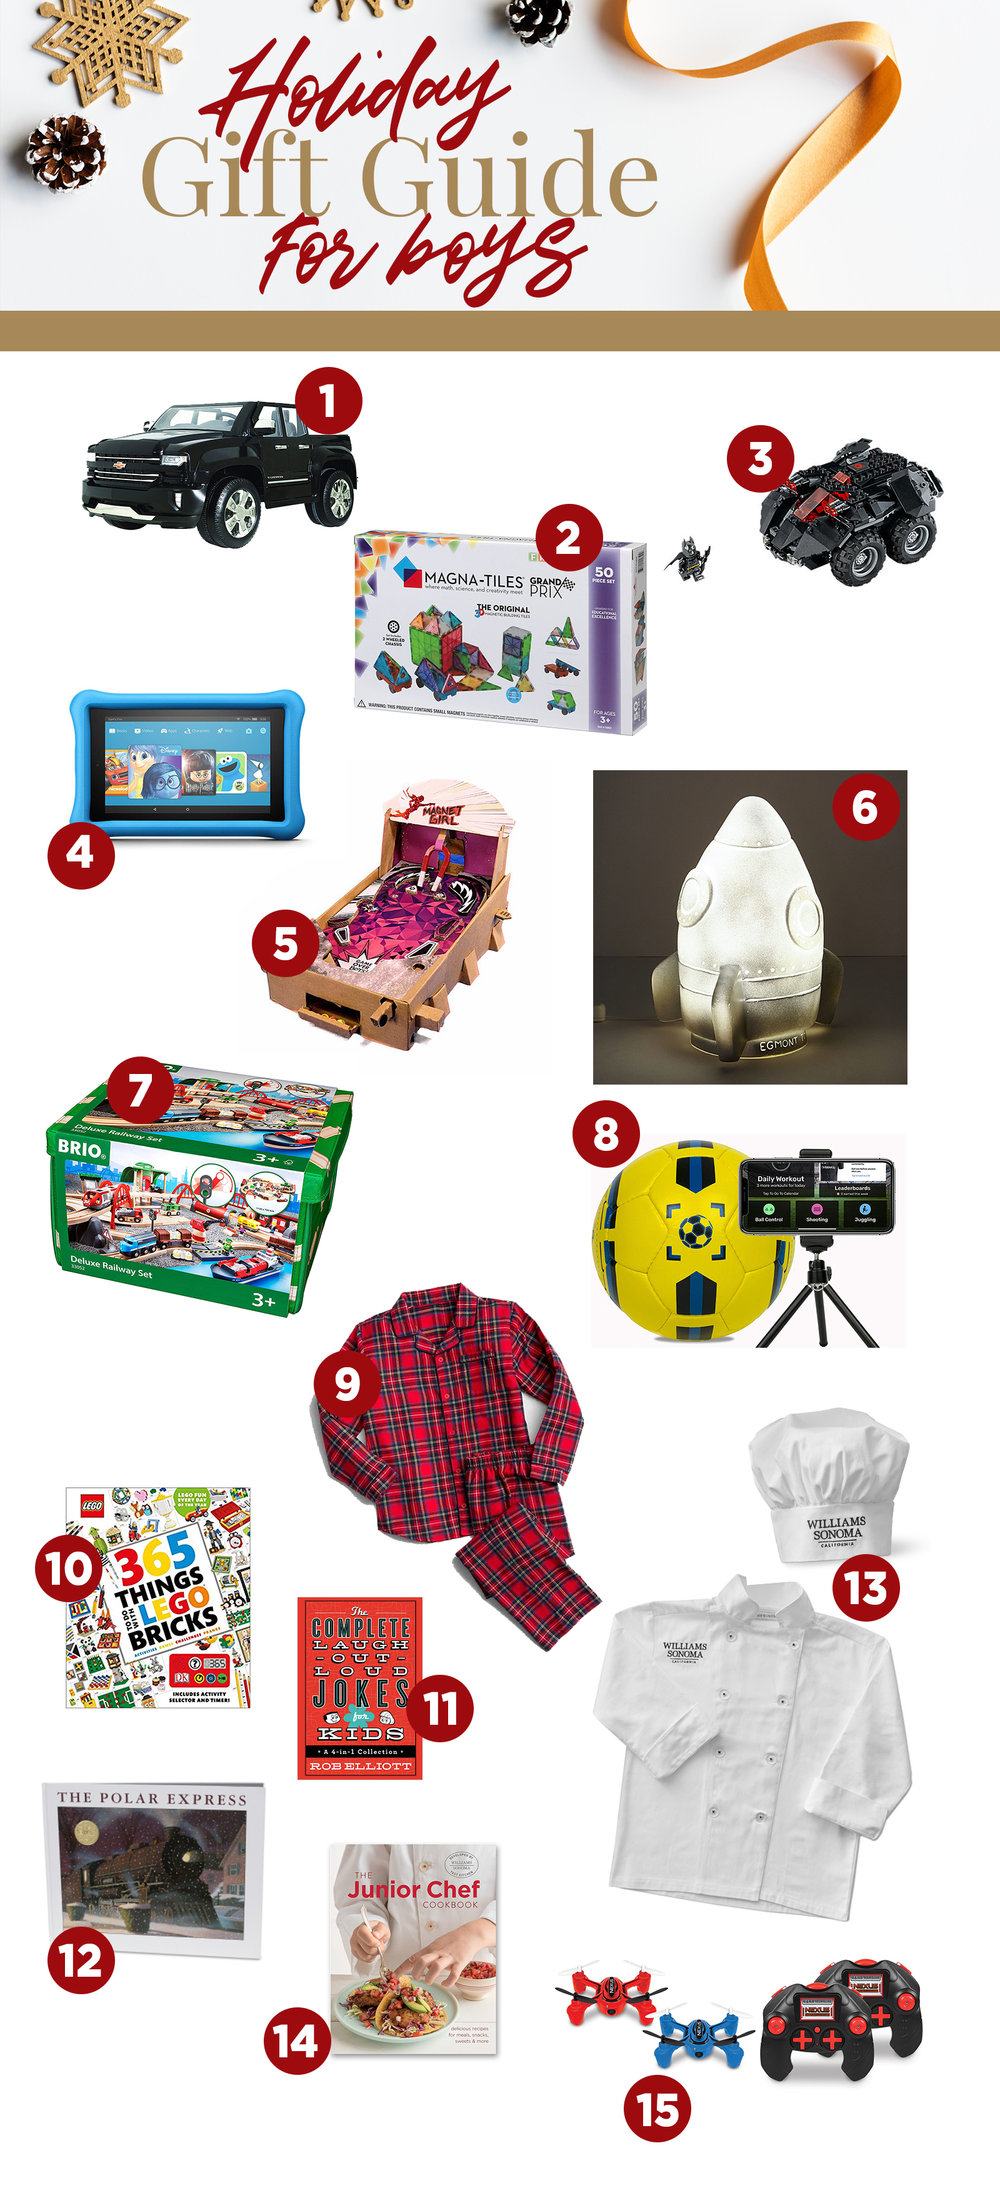 Holiday Gift Guide for Boys